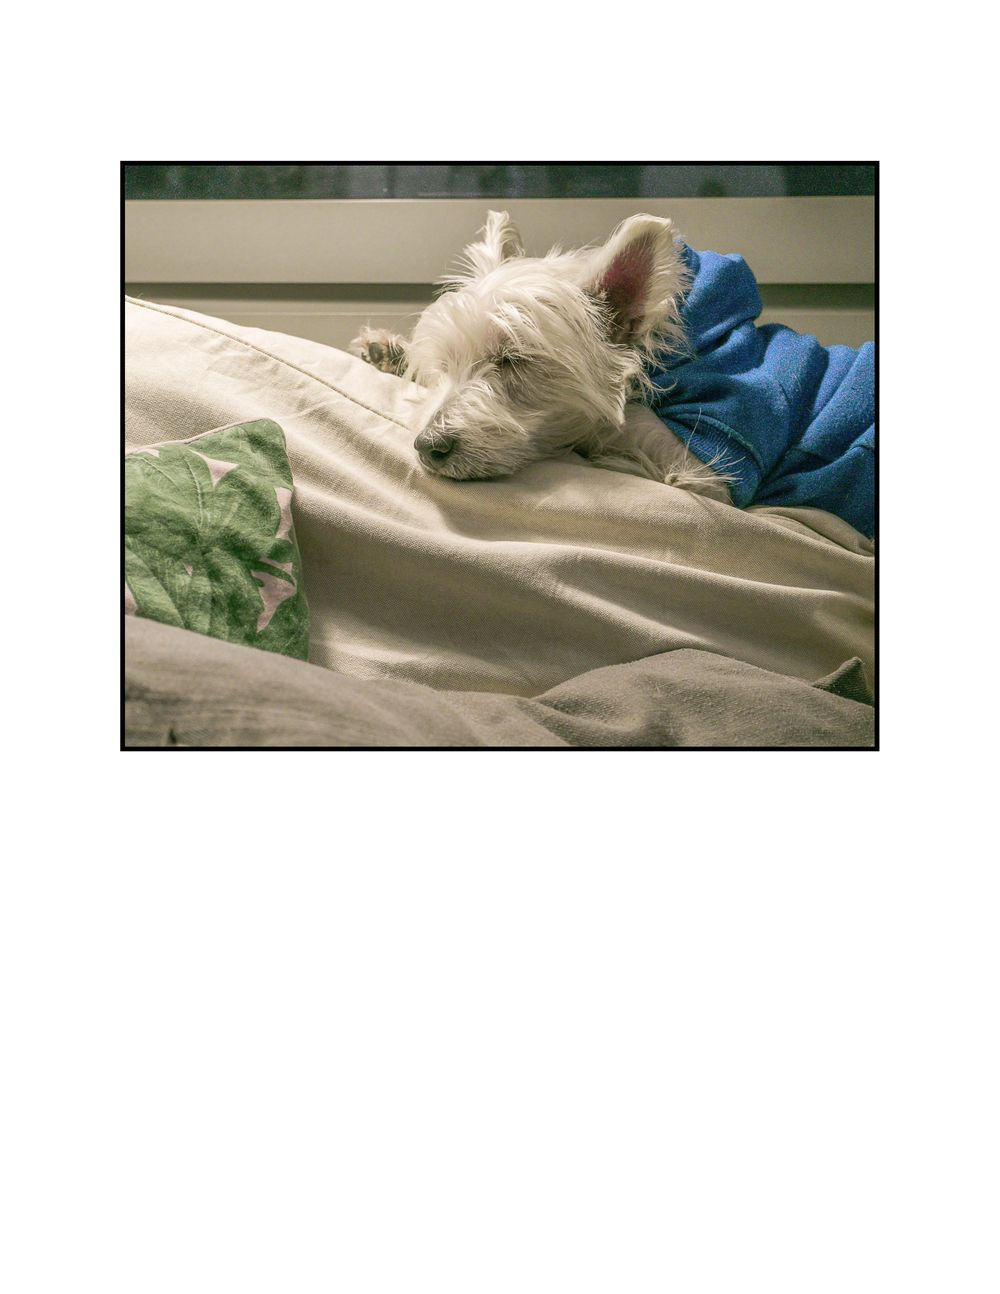 My dog Bastian, is really a grumpy old man. - image 3 - student project